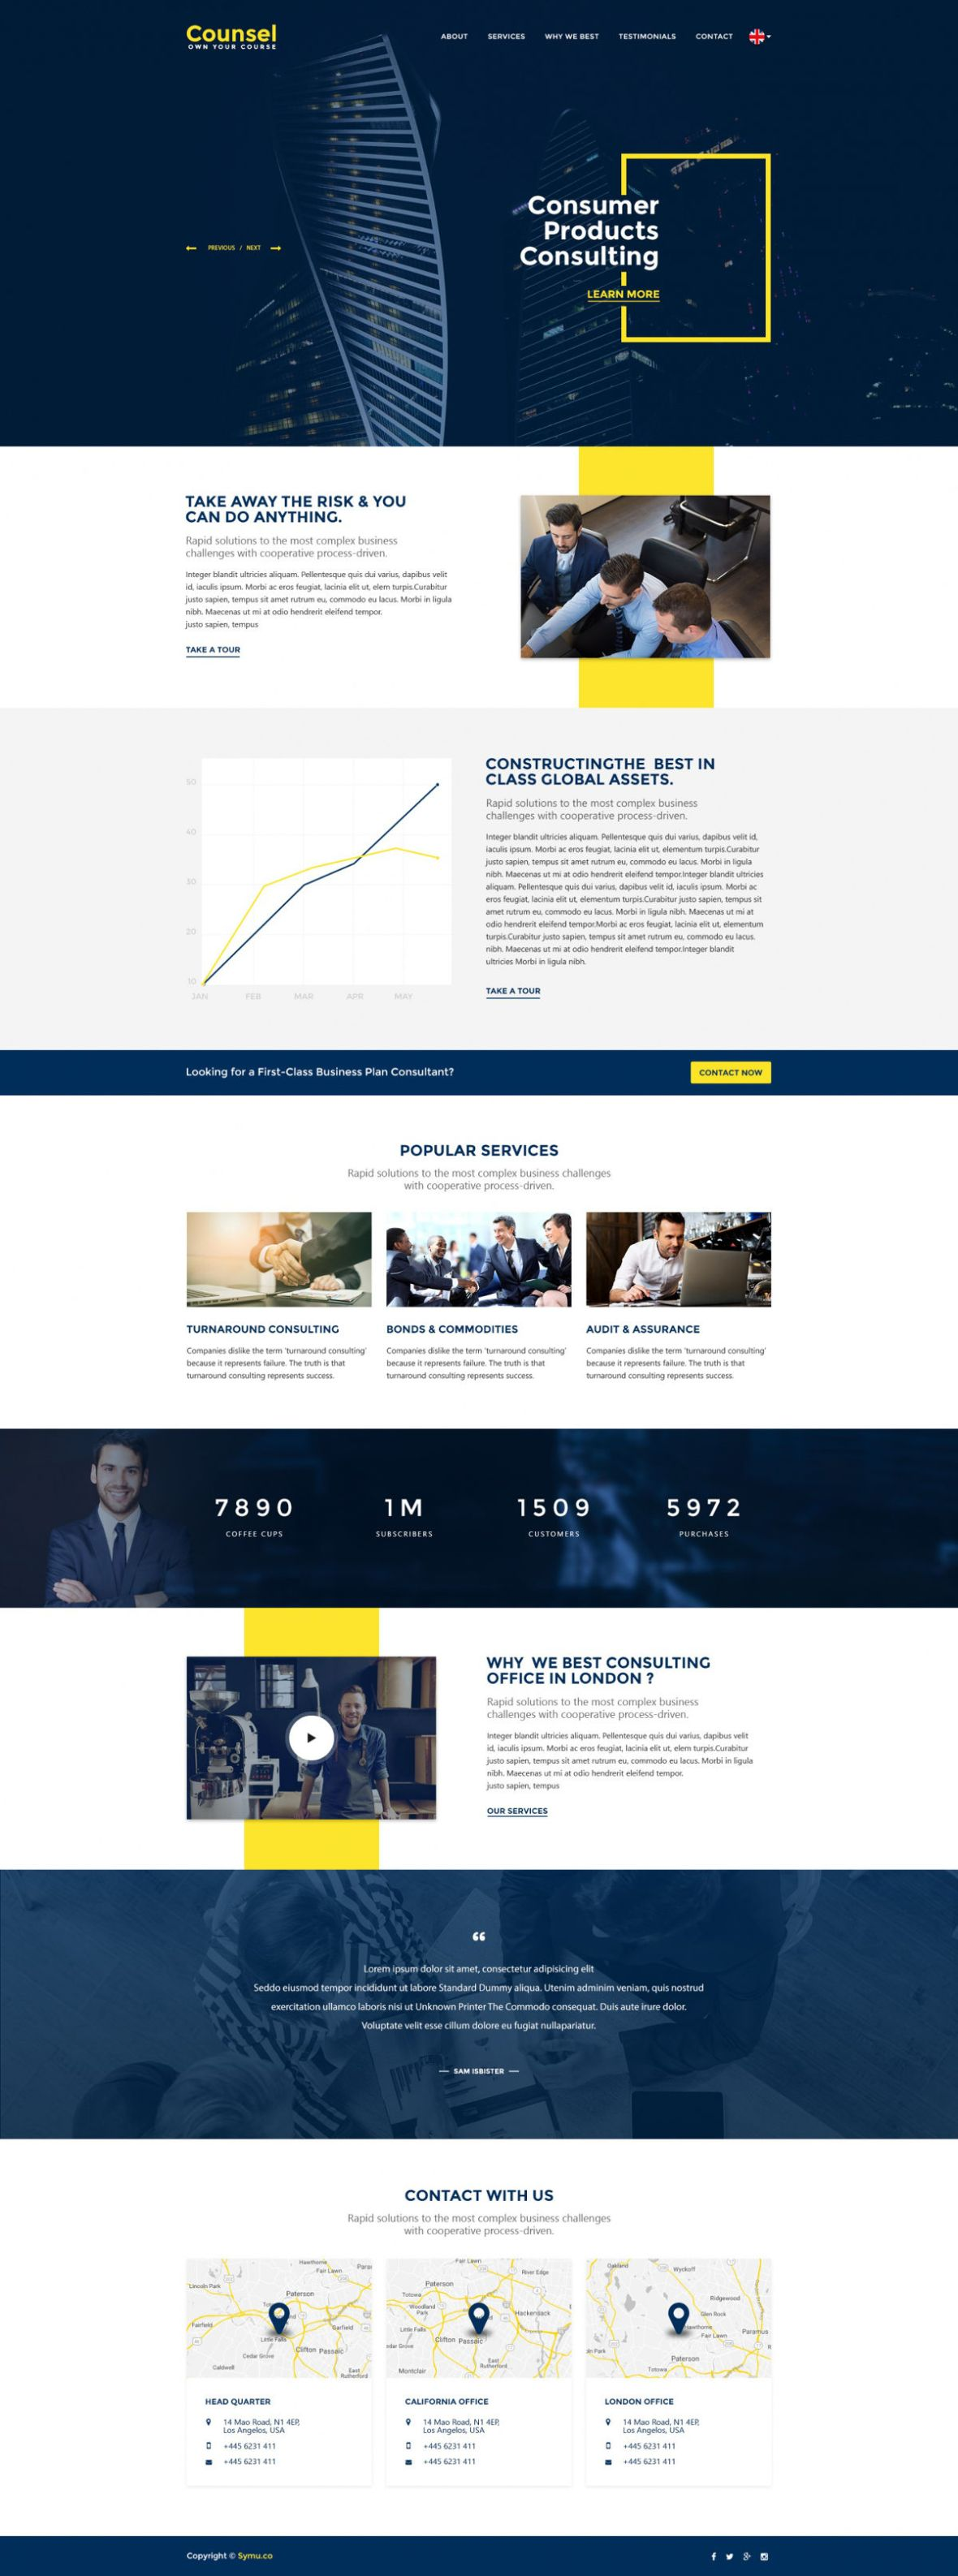 Counse - Free Business Website PSD Template